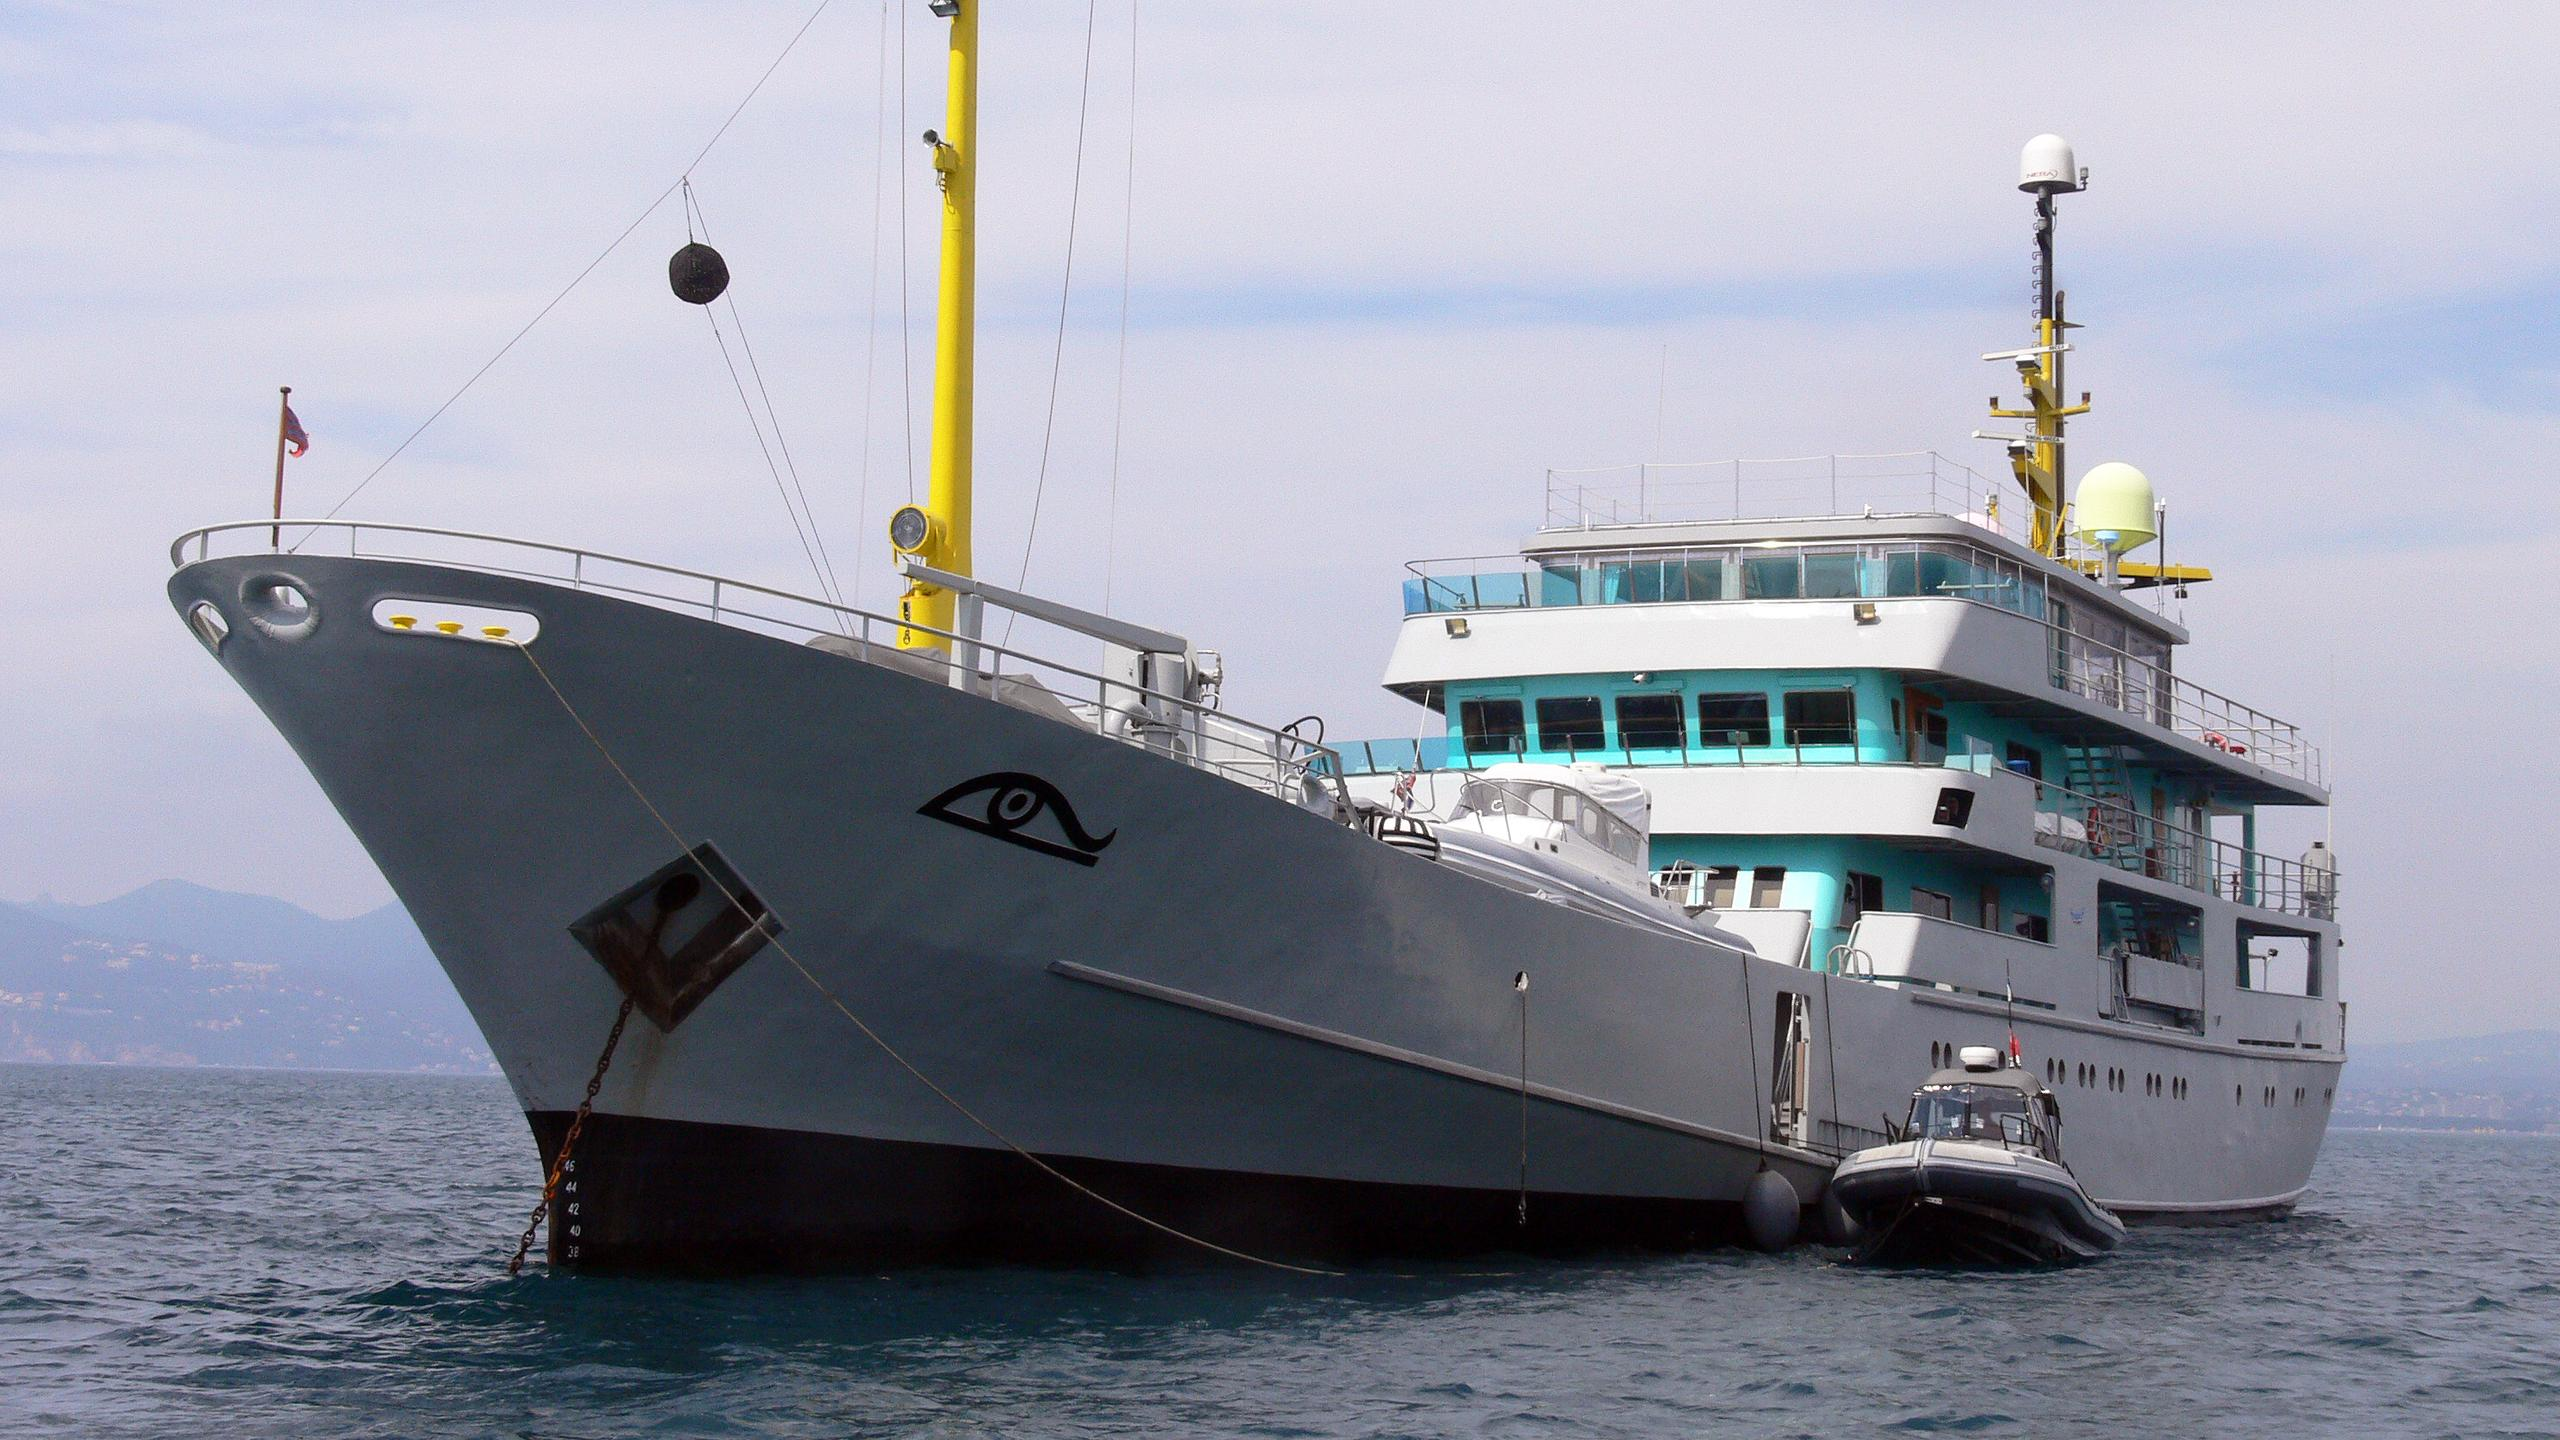 amazon-express-explorer-yacht-arsenale-venice-1966-67m-half-profile